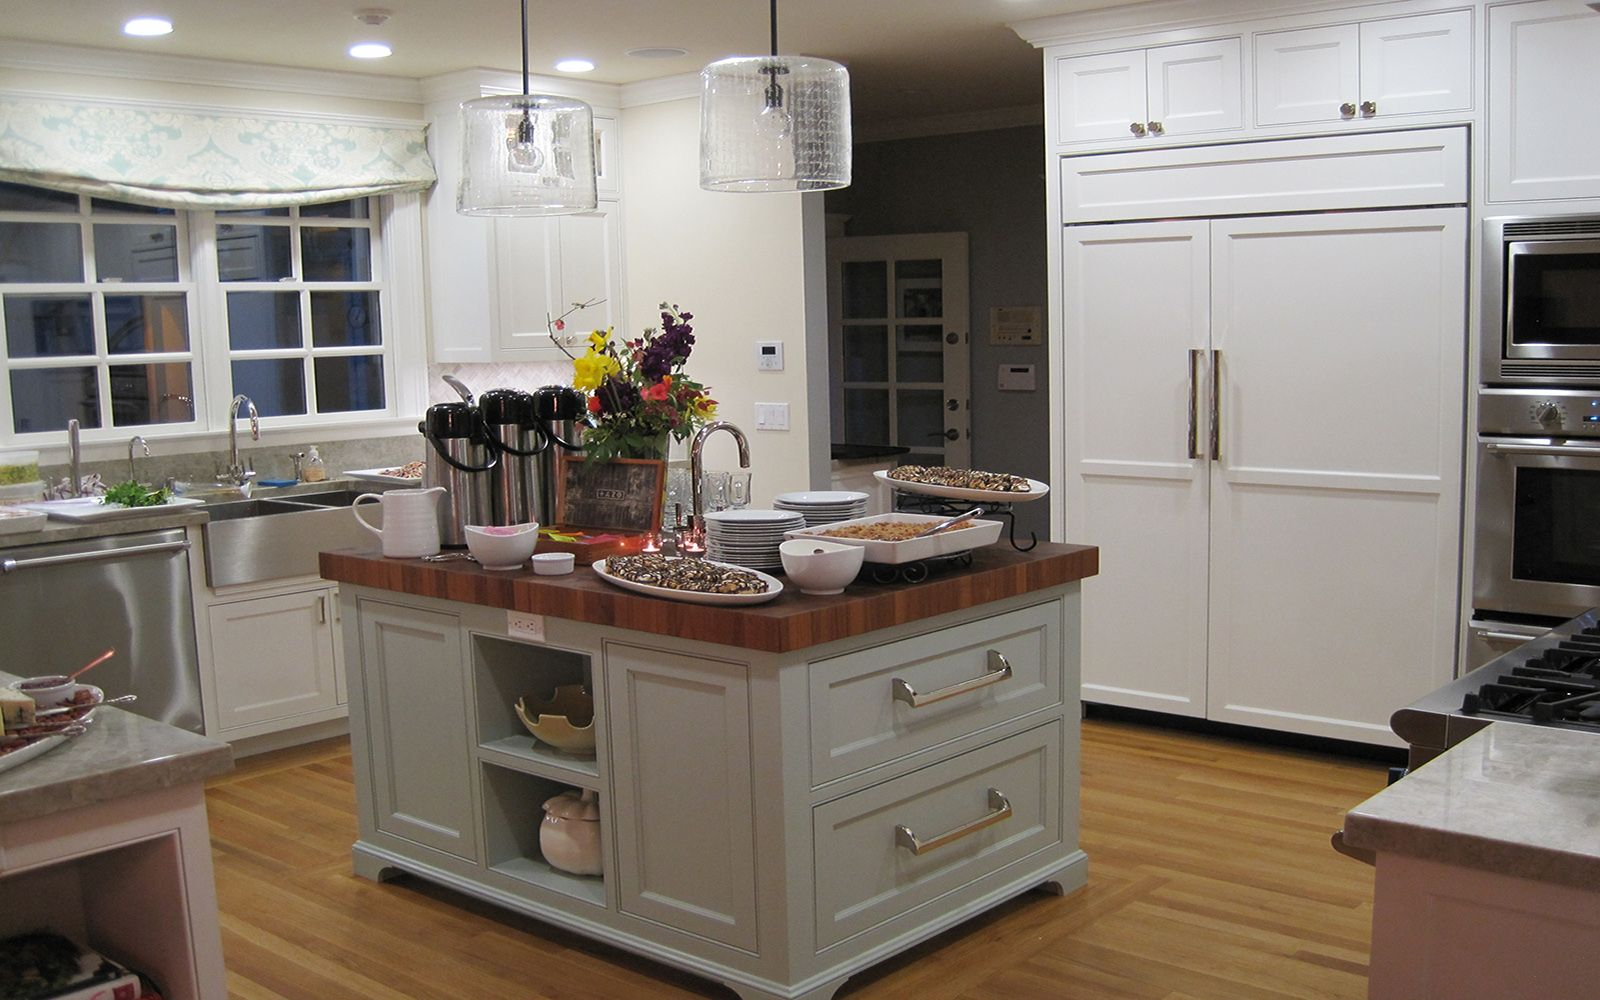 Kitchen island kitchens pinterest - Kitchen cabinets pinterest ...